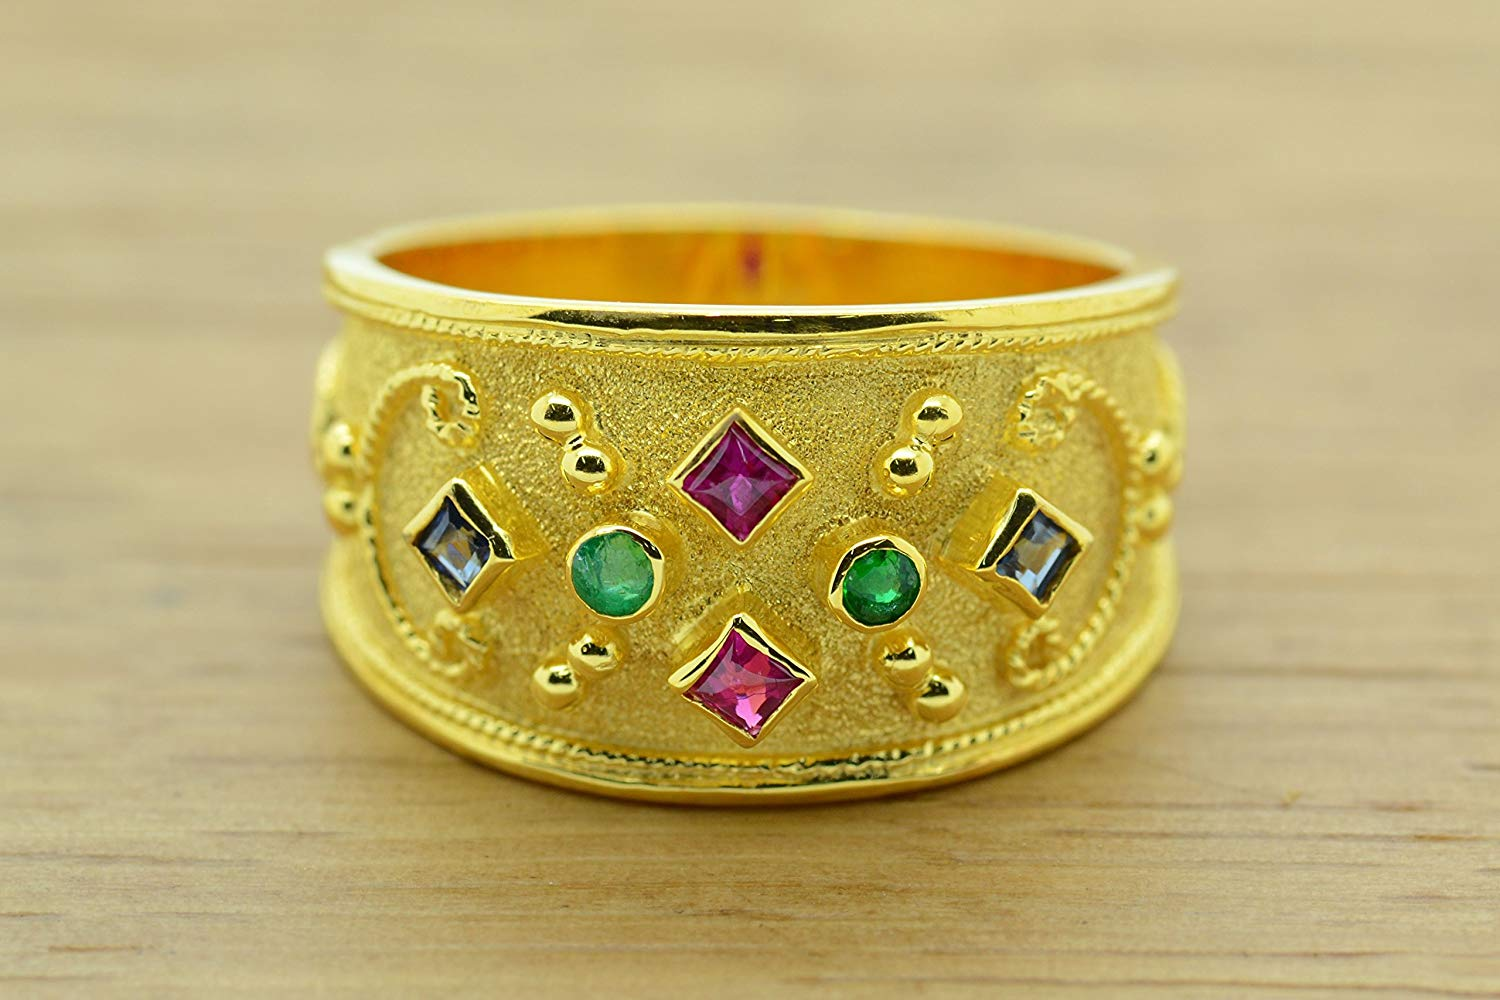 Ruby Emerald Sapphire Ring Byzantine Style 925 Sterling Silver Greek Handmade Art 22K Gold Plated, Byzantine Rubies Emeralds Sapphire CZ Ring, 22K Gold Plated Ring, CZ Band Ring, Sterling Silver Ring, Byzantine Ring, Greek Jewelry, Luxury Ring, Medieval Ring, Elegant Sterling Silver Ring, cubic